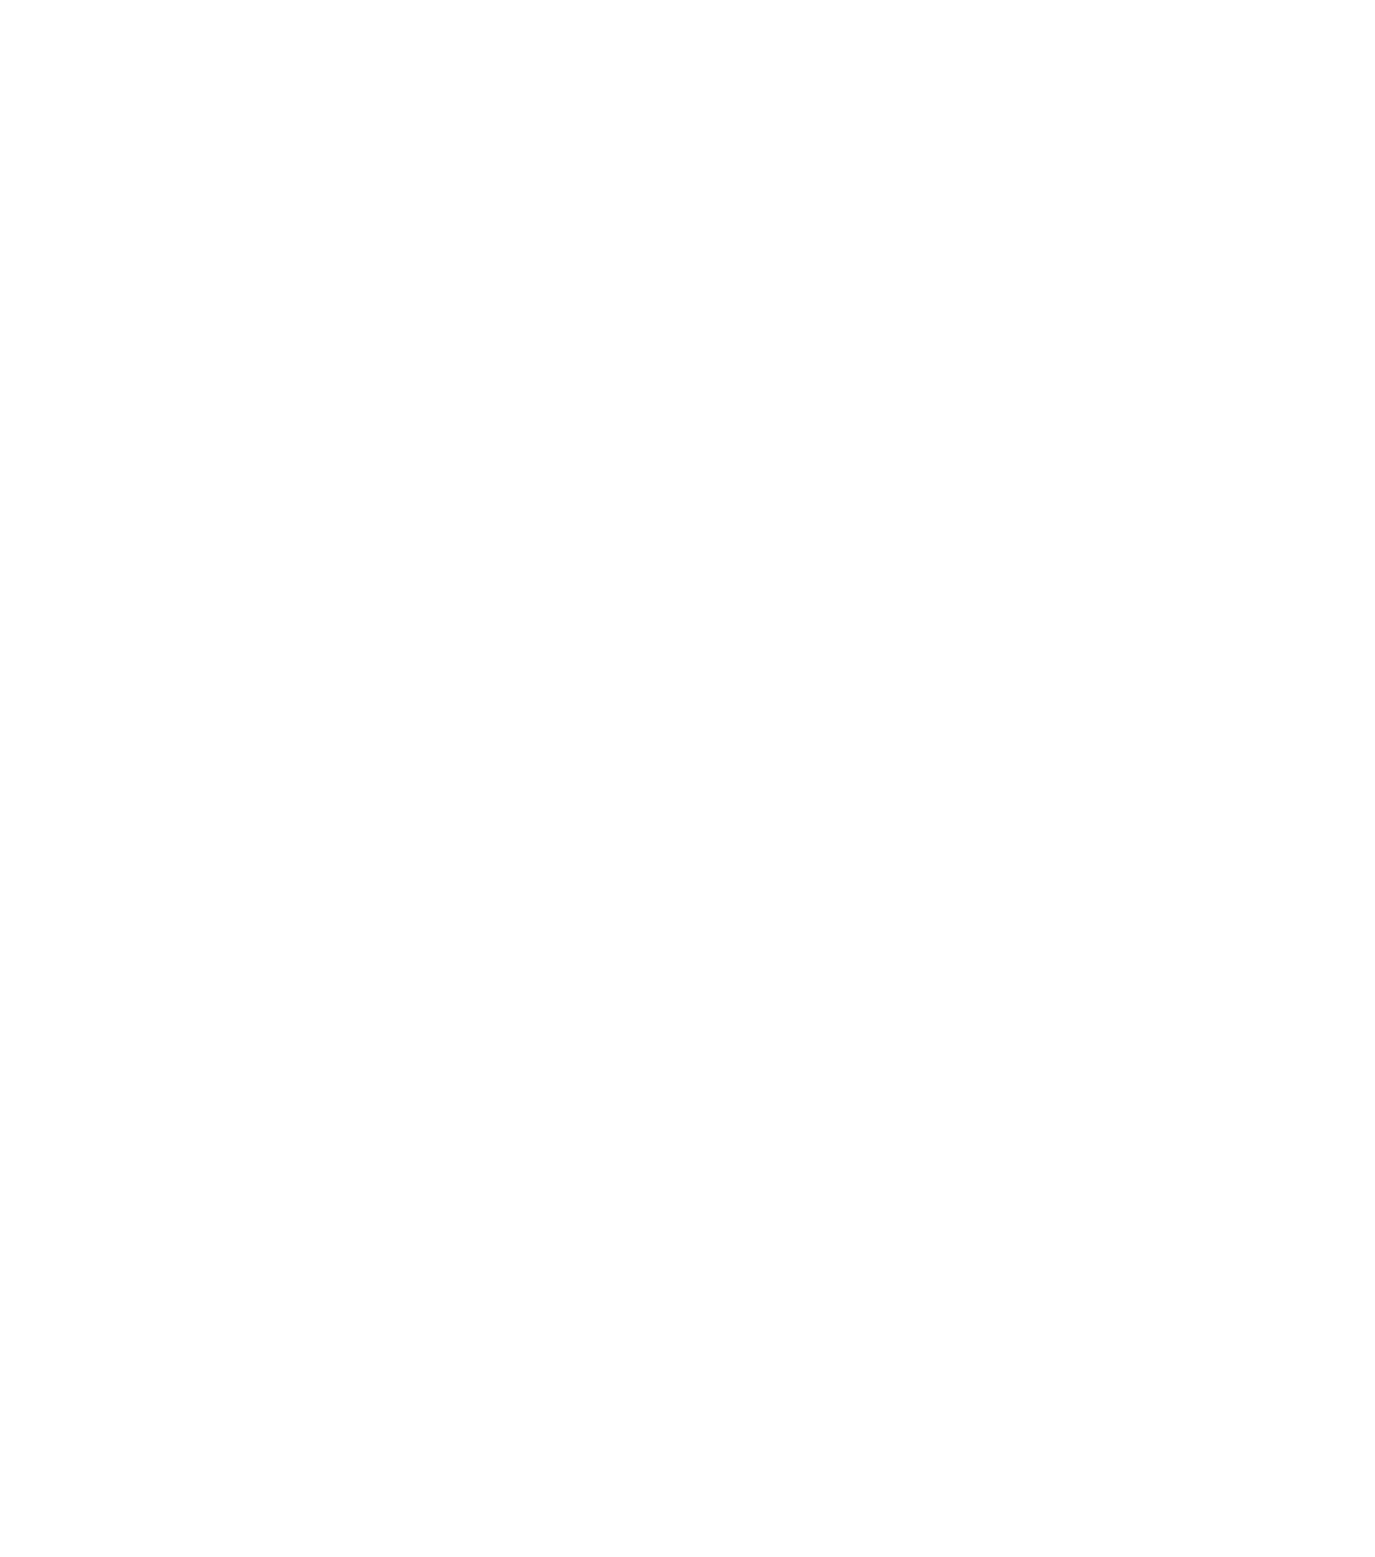 Watch it grow.